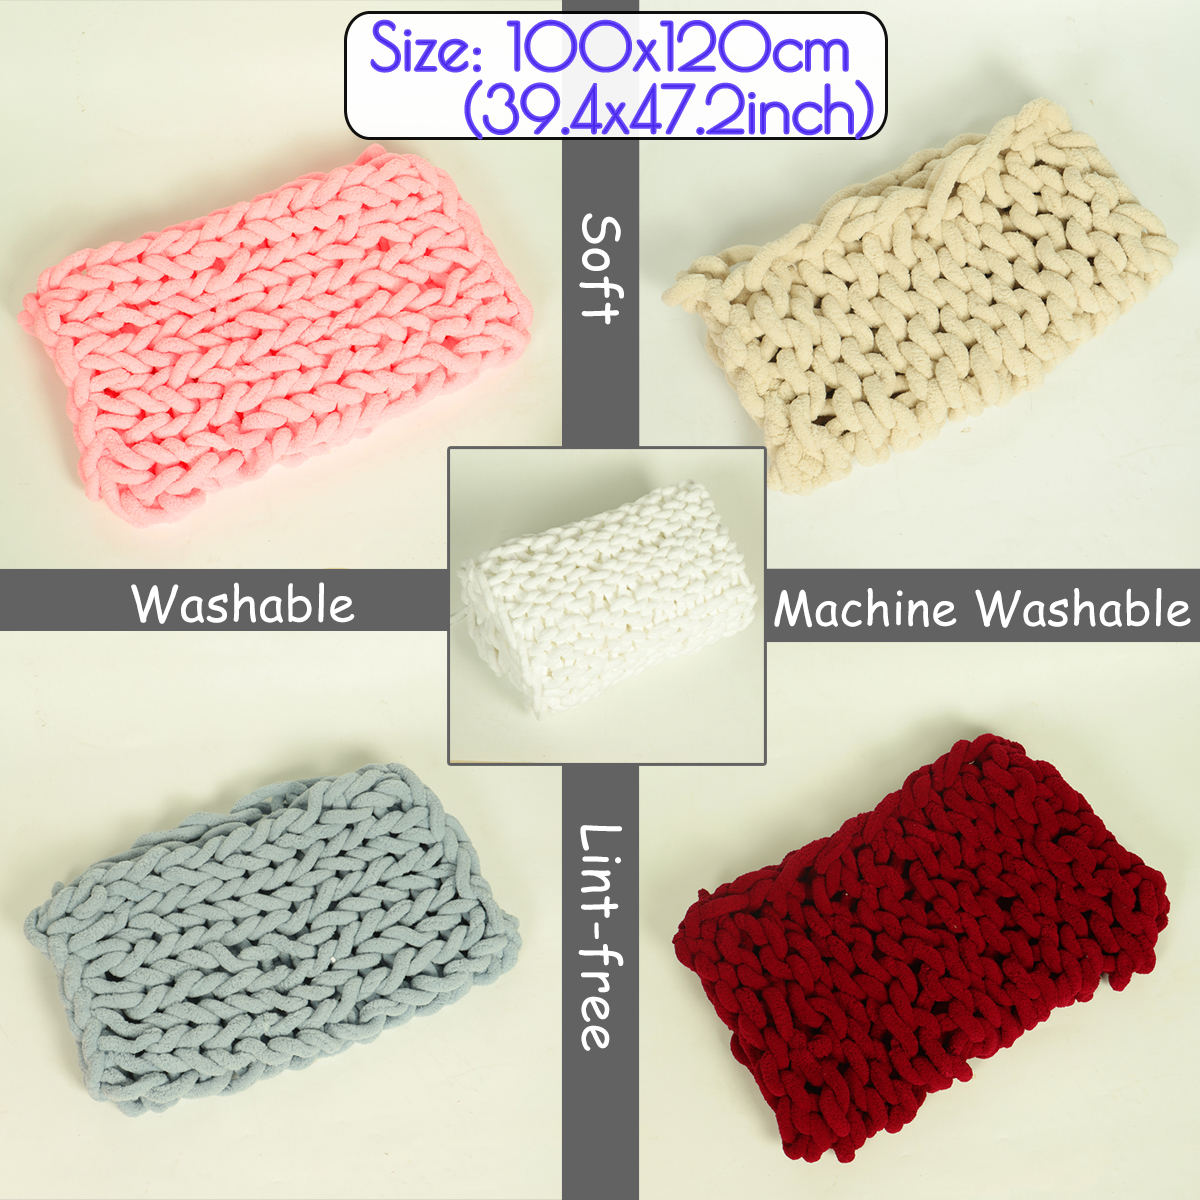 100x120cm Handmade Knitted Blanket Cotton Soft Washable Lint-free Throw Blankets